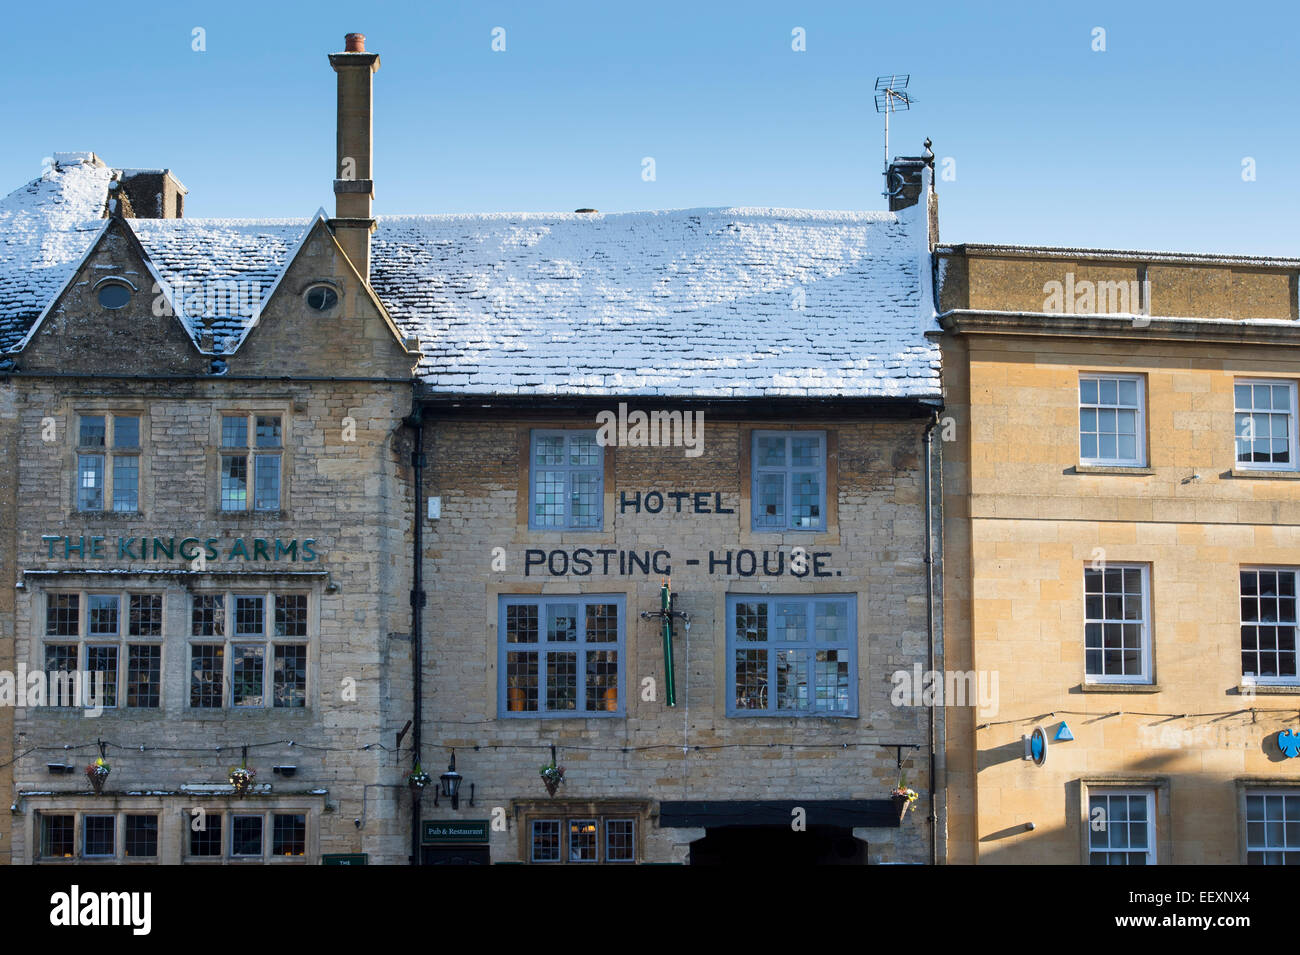 The Kings Arms and Posting house hotel, Stow on the Wold, Gloucestershire, Cotswolds, England - Stock Image